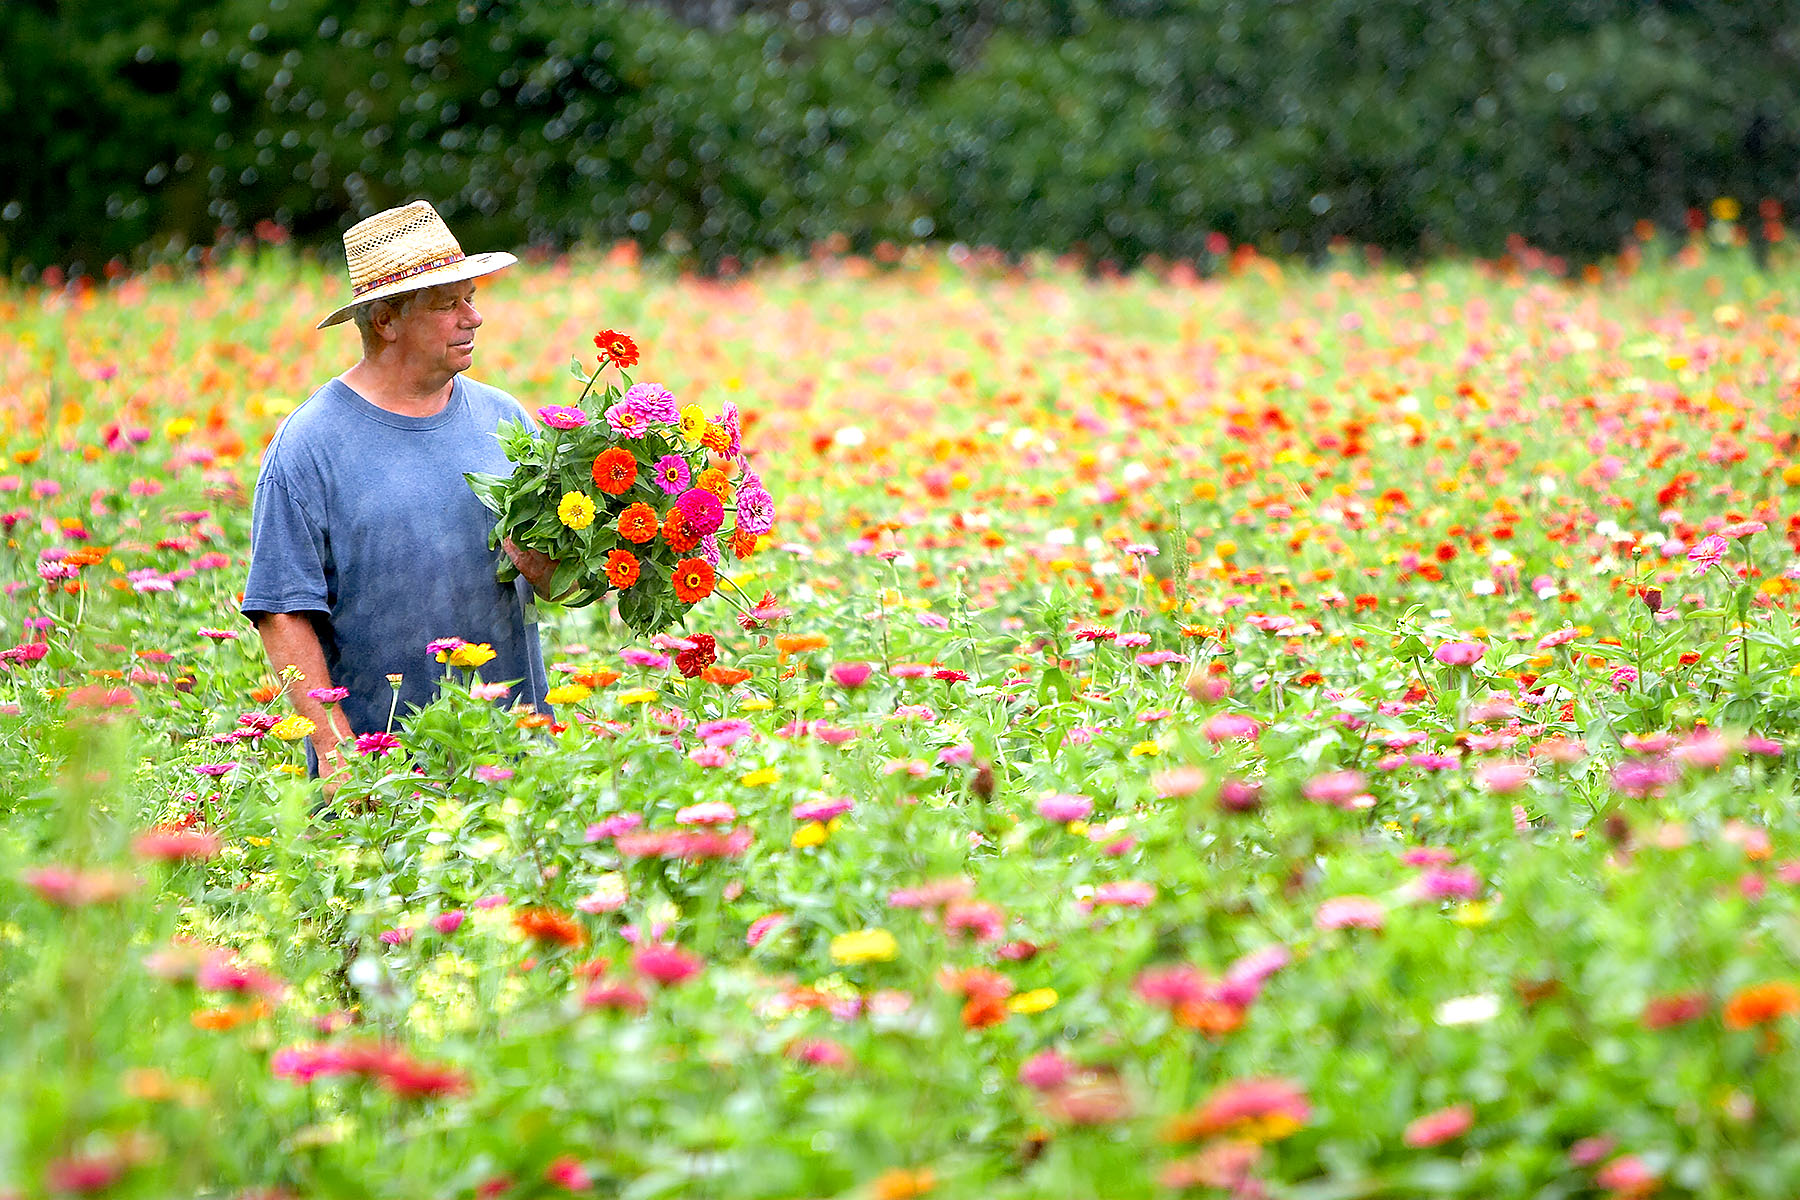 Man picking flowers